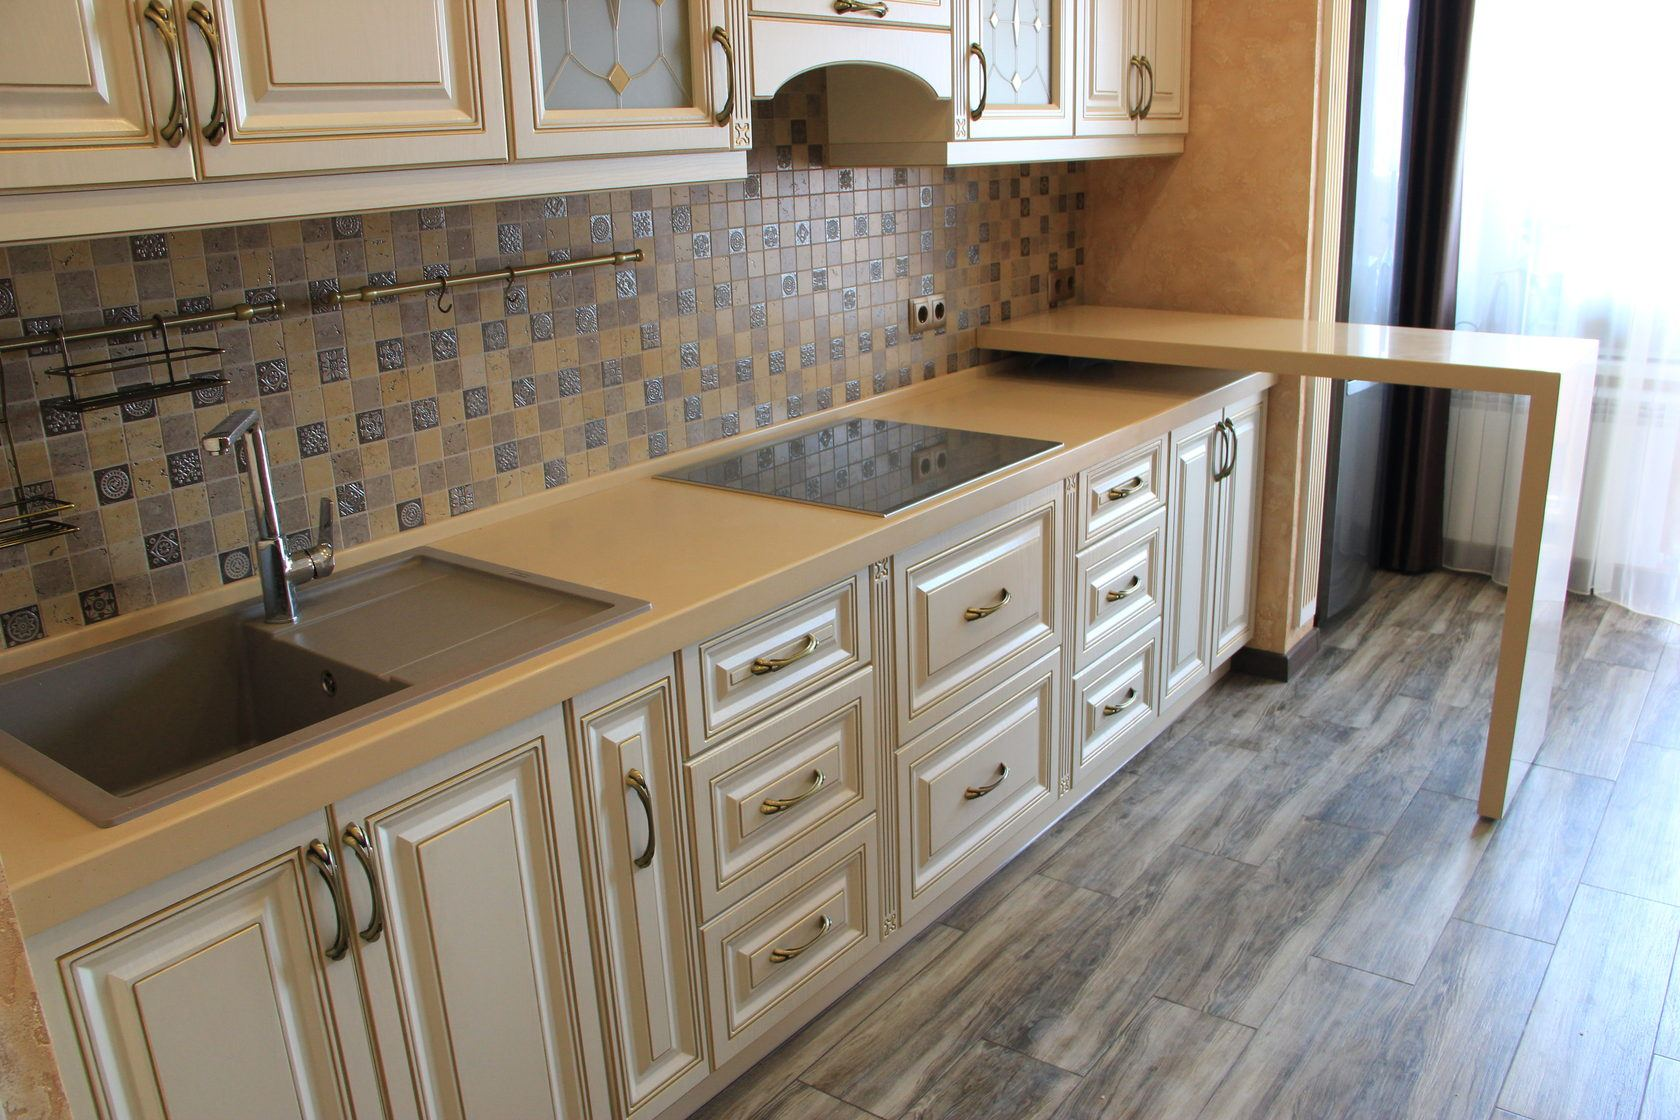 Classic kitchen design in pastel colors with mosaic tile backsplash and laminated floor